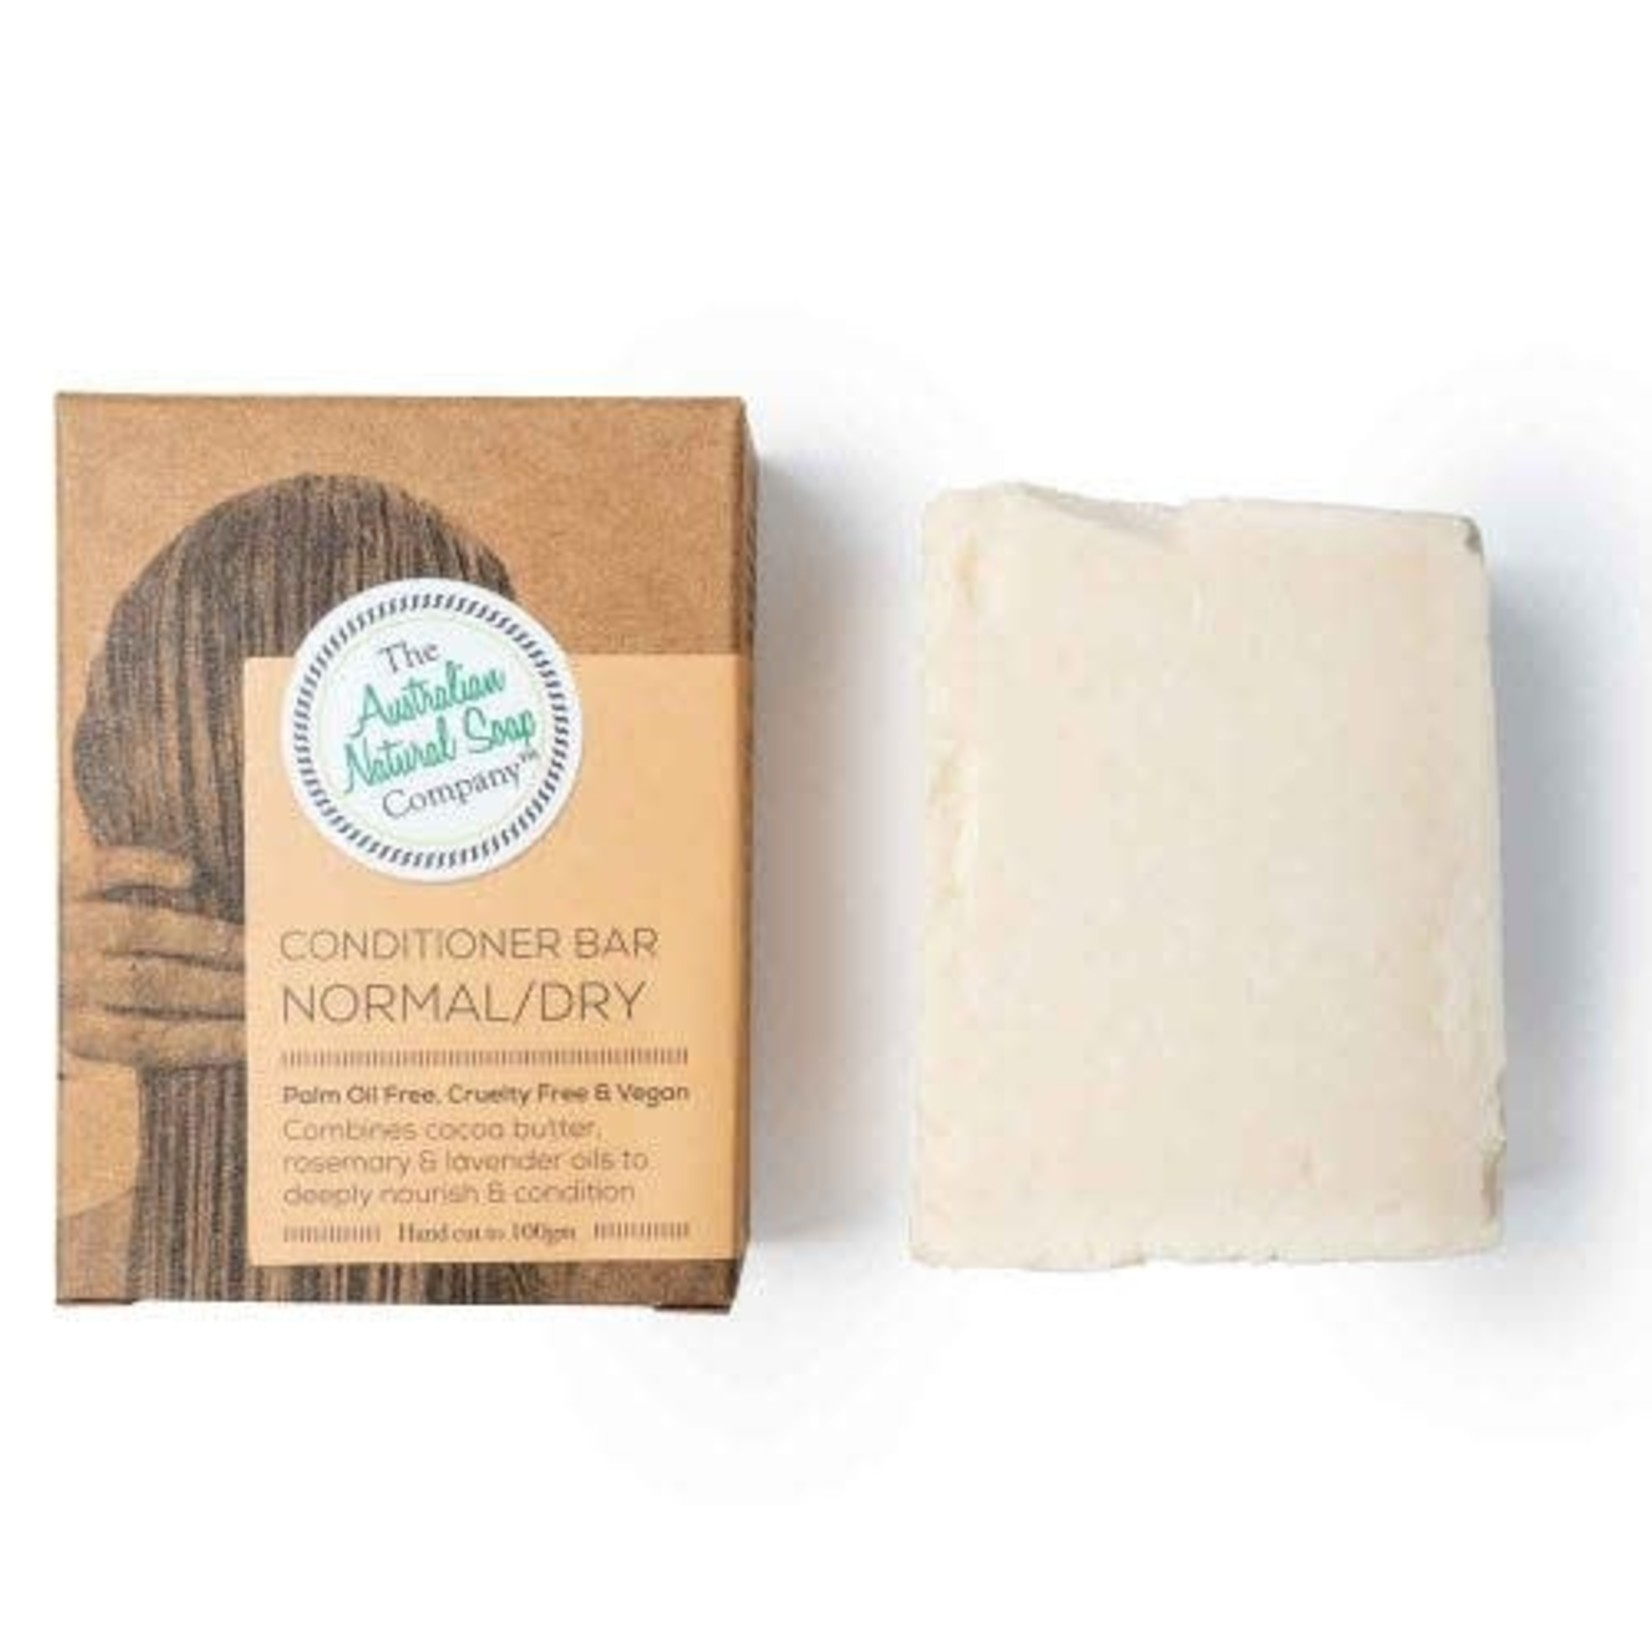 The Australian Natural Soap Company The Australian Natural Soap Company Conditioner Bar Normal/Dry